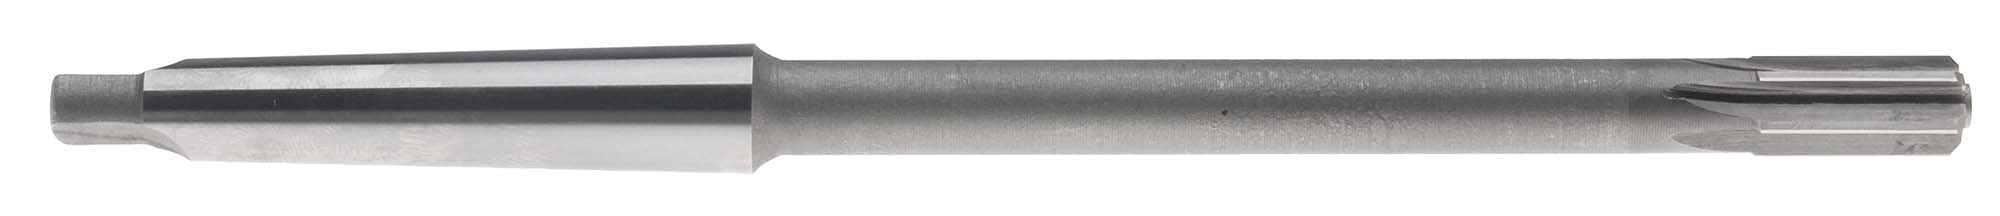 "1-9/16"" Expanding Machine Reamer, Taper Shank, High Speed Steel"